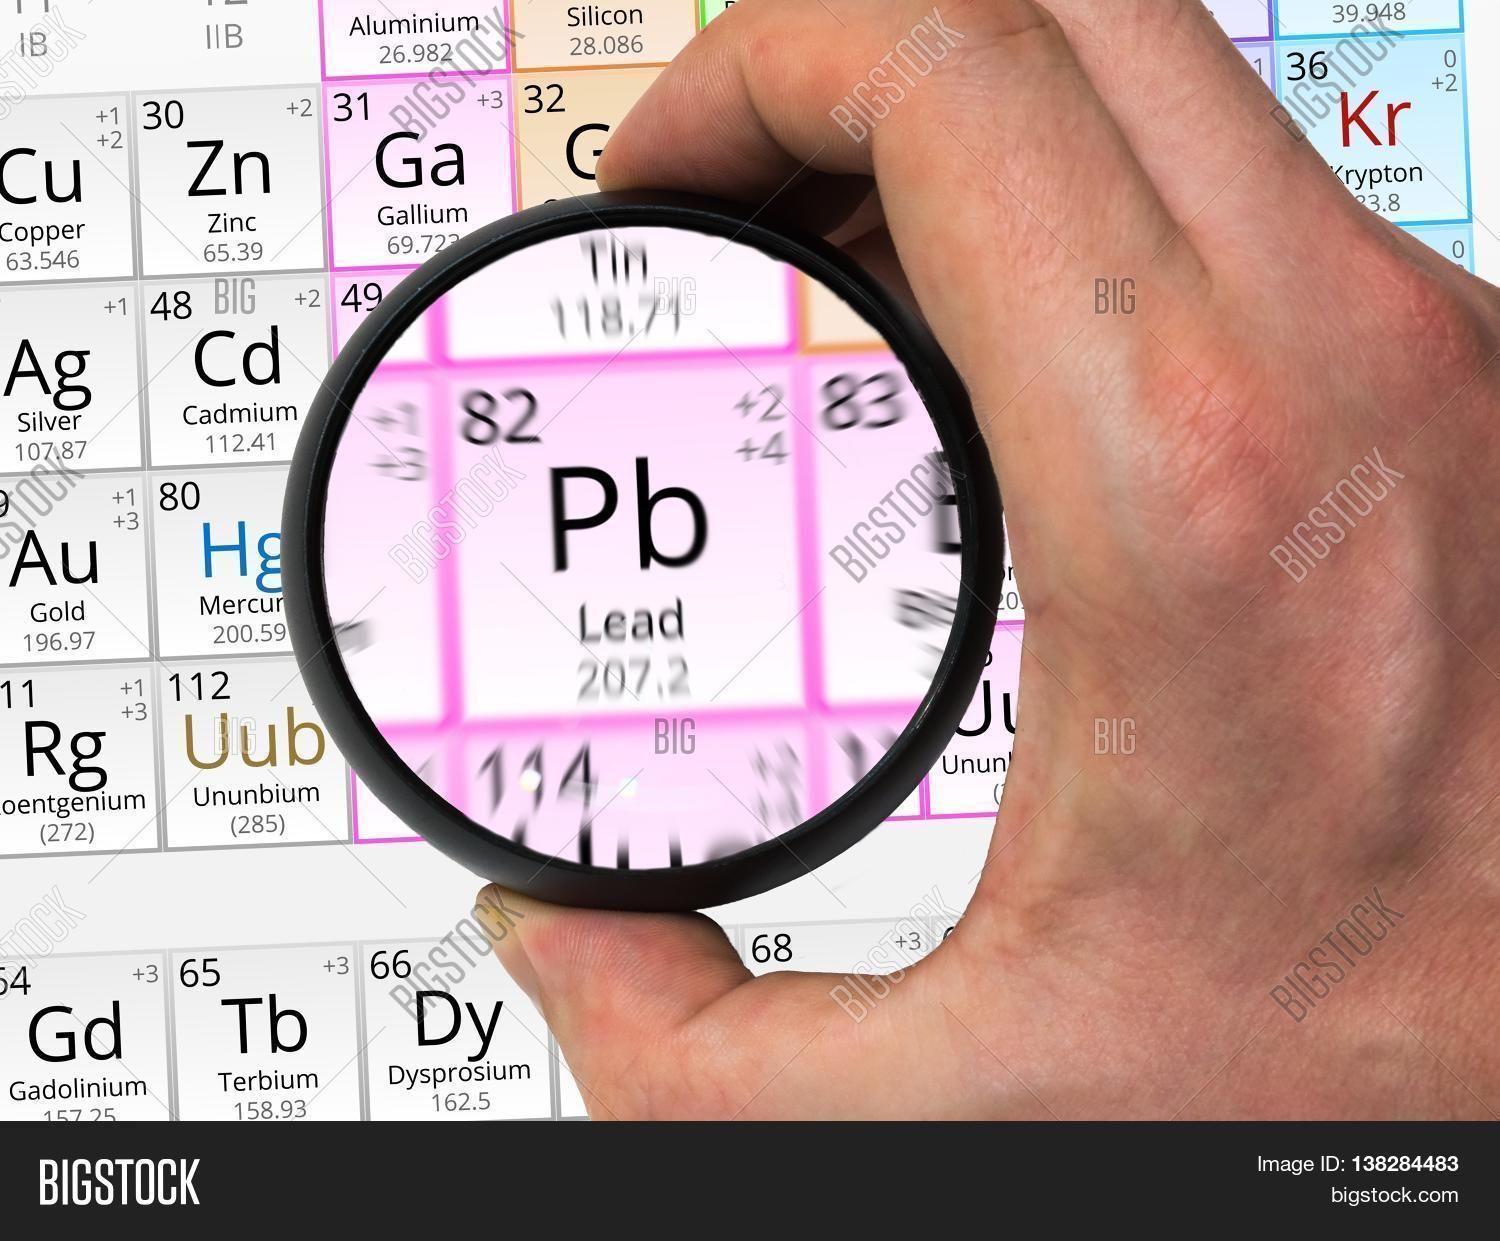 lead symbol pb element of the periodic table zoomed with magn - Periodic Table Symbol Pb